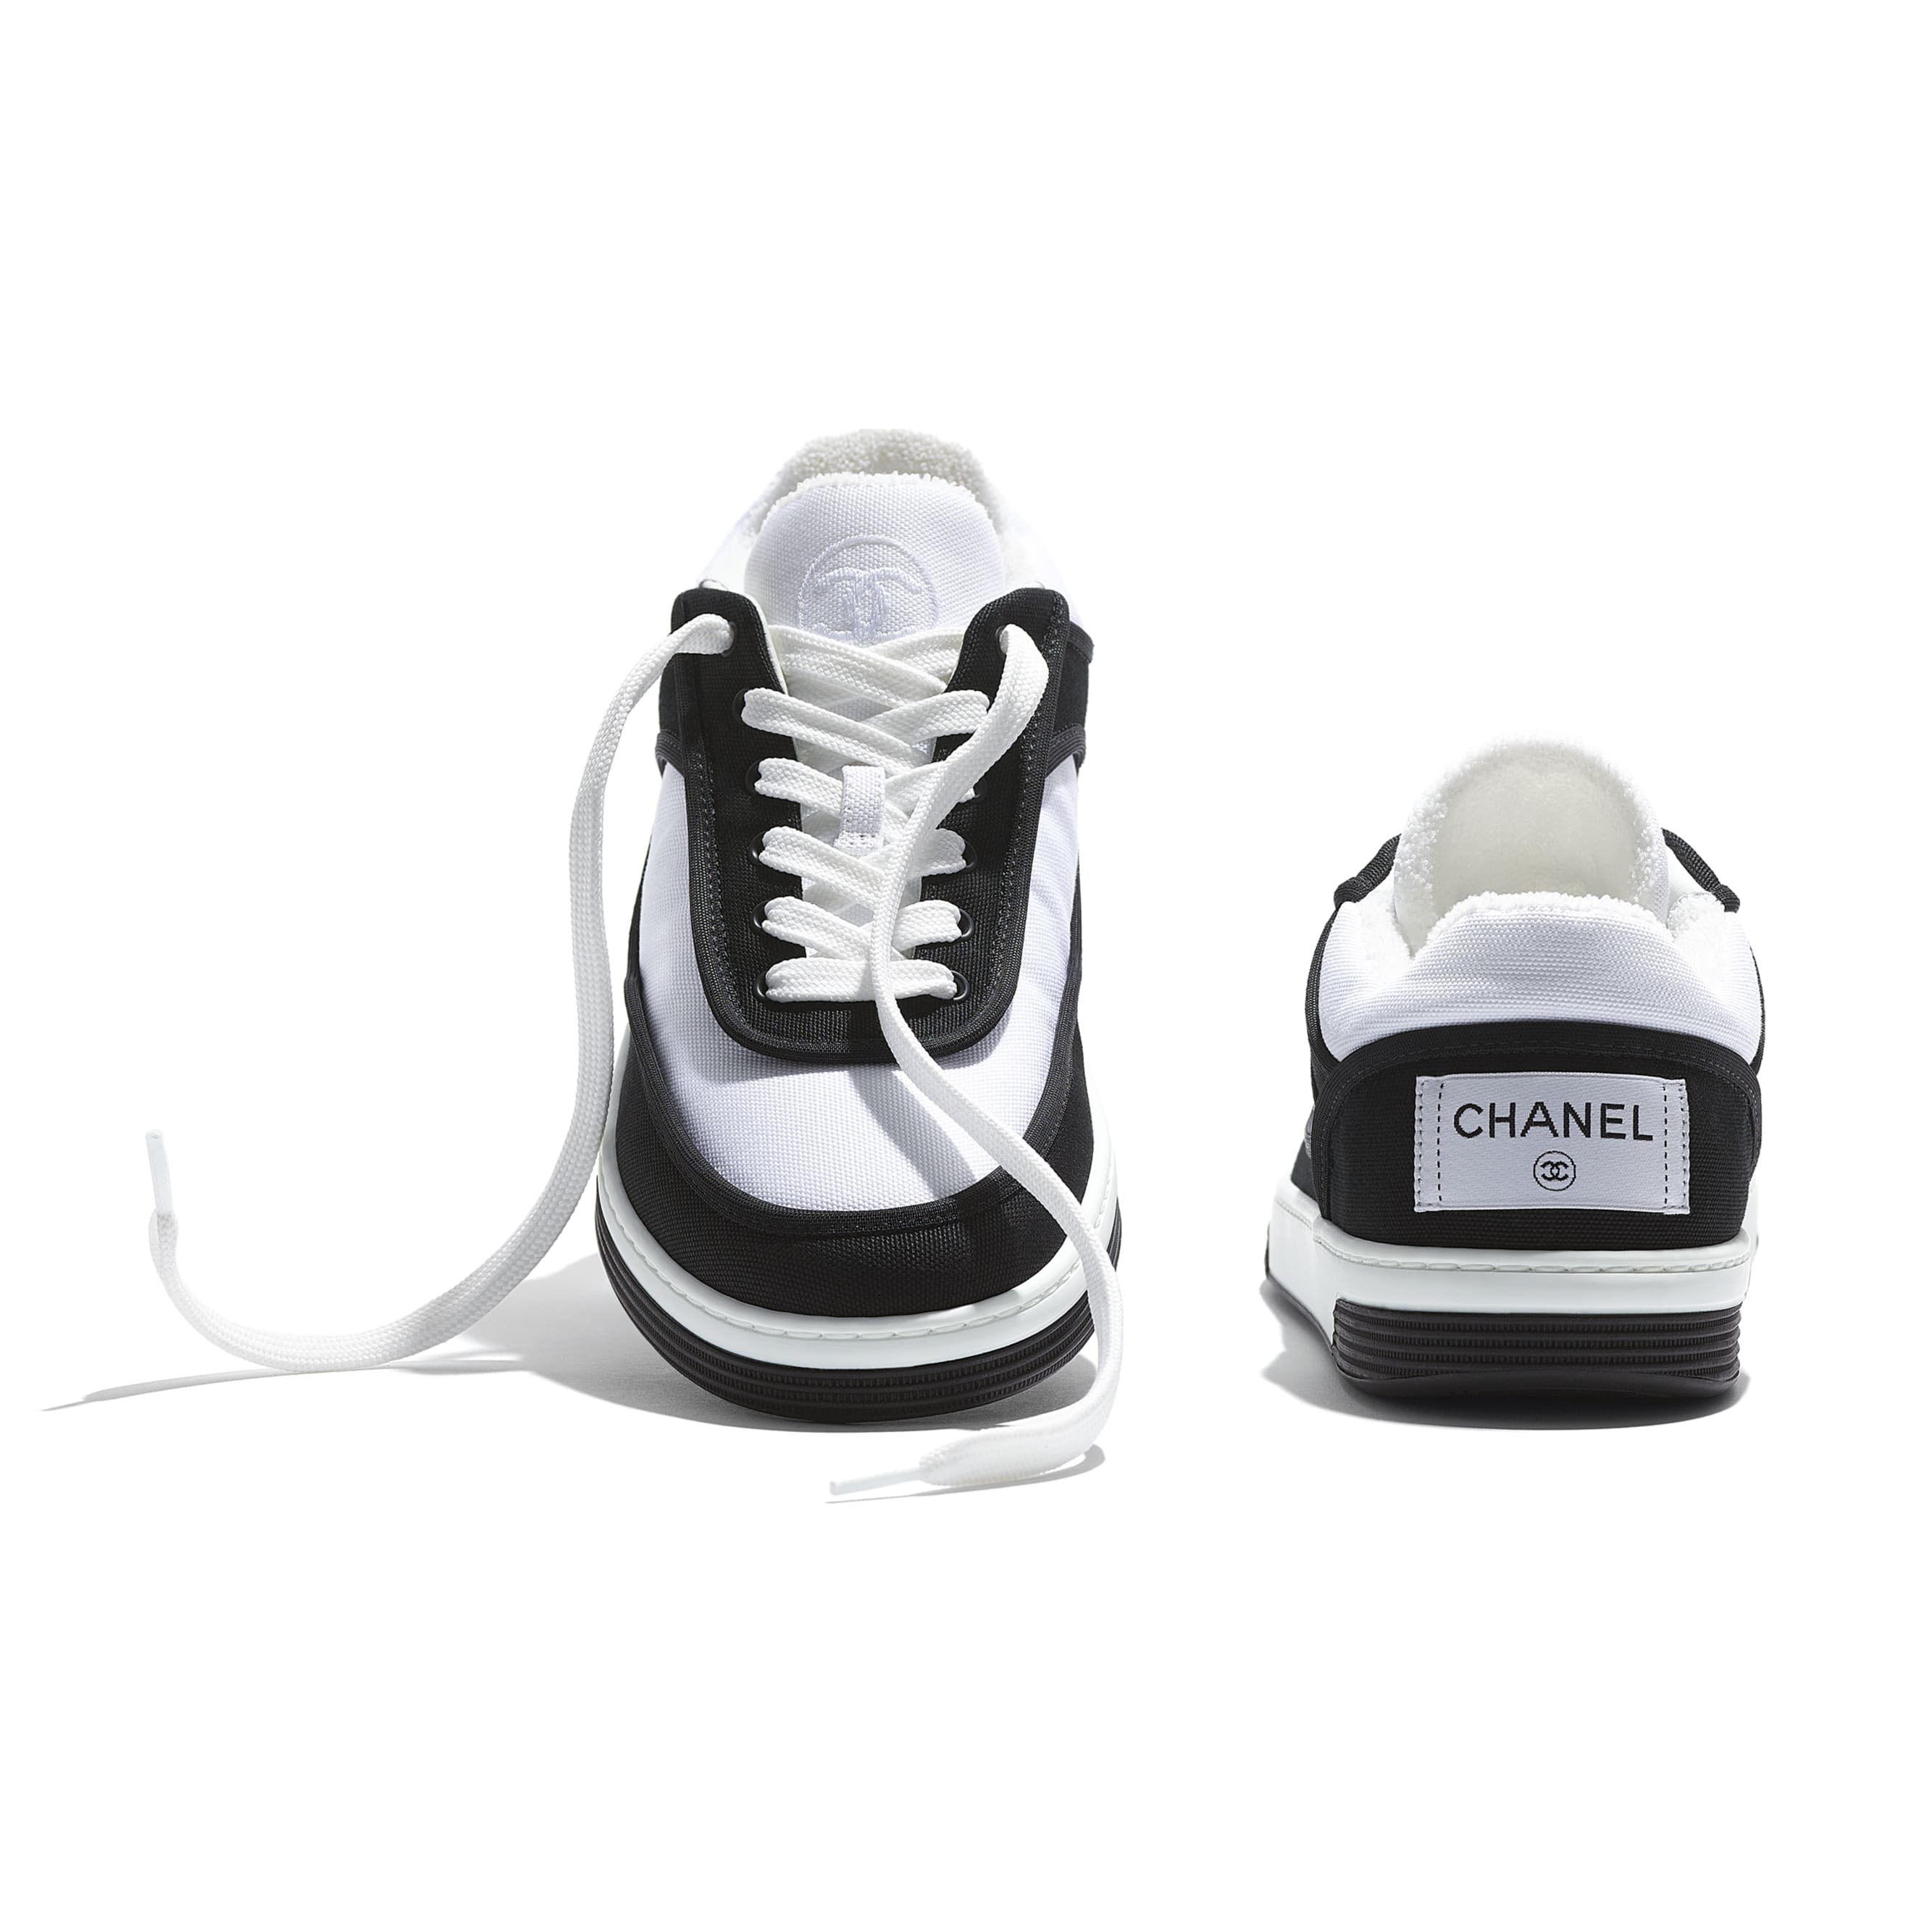 Trainers - Black & White - Fabric - CHANEL - Extra view - see standard sized version